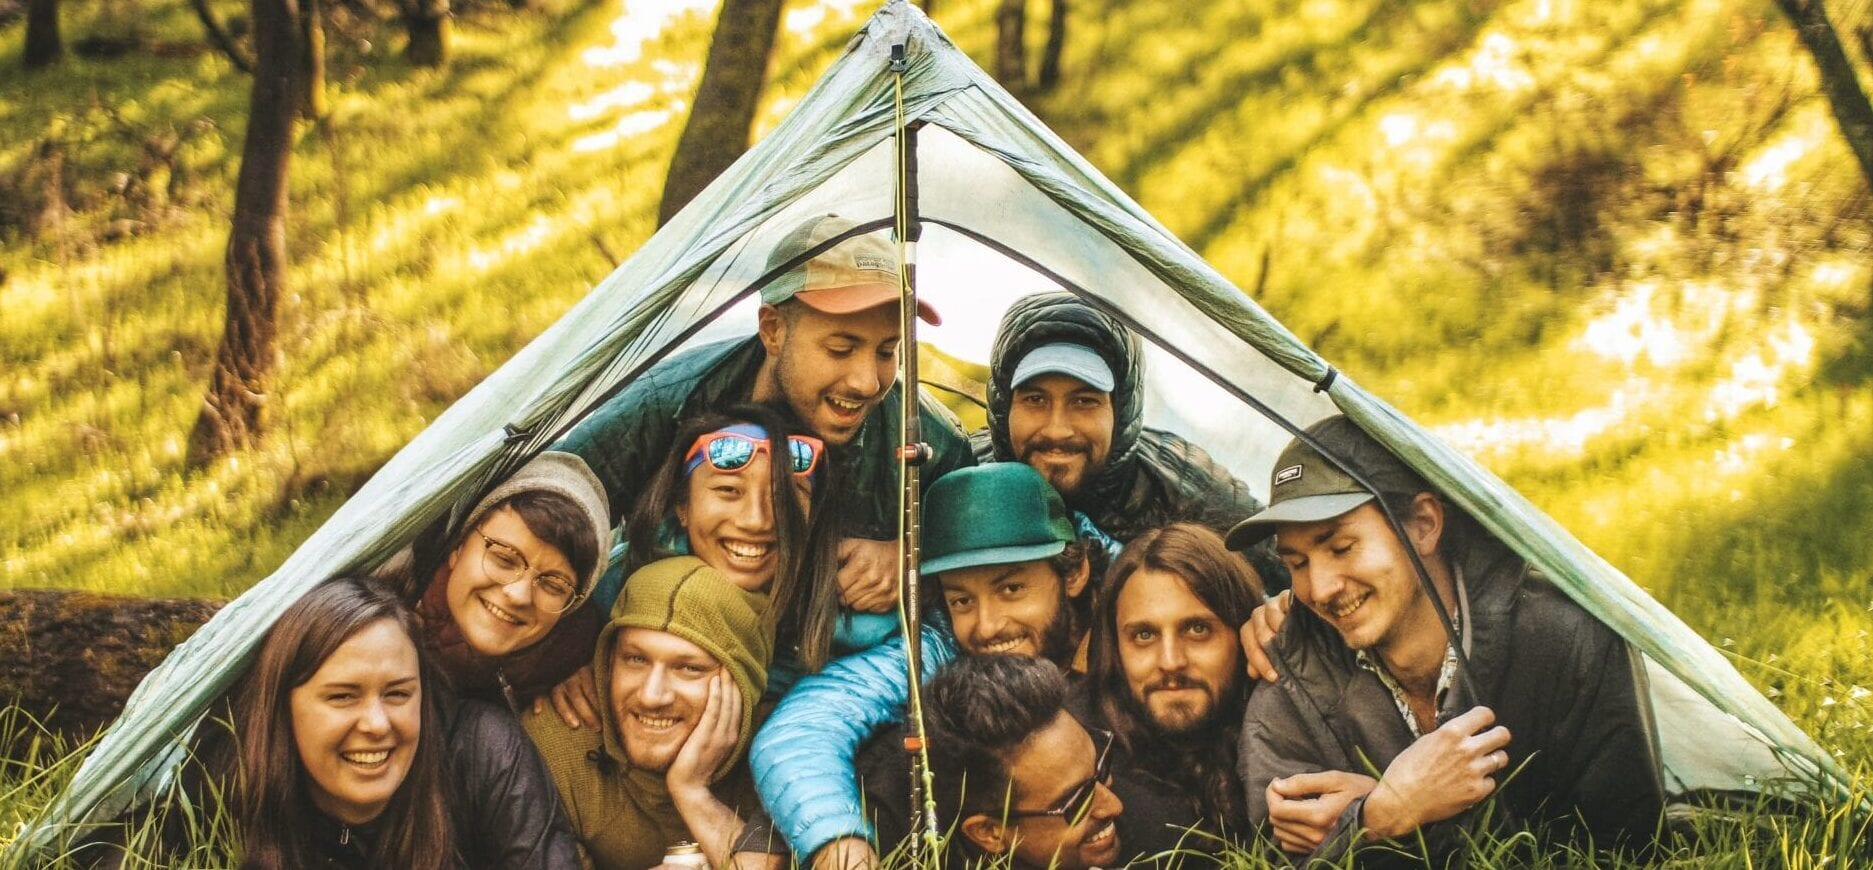 Ten laughing hikers cram into a small tent.